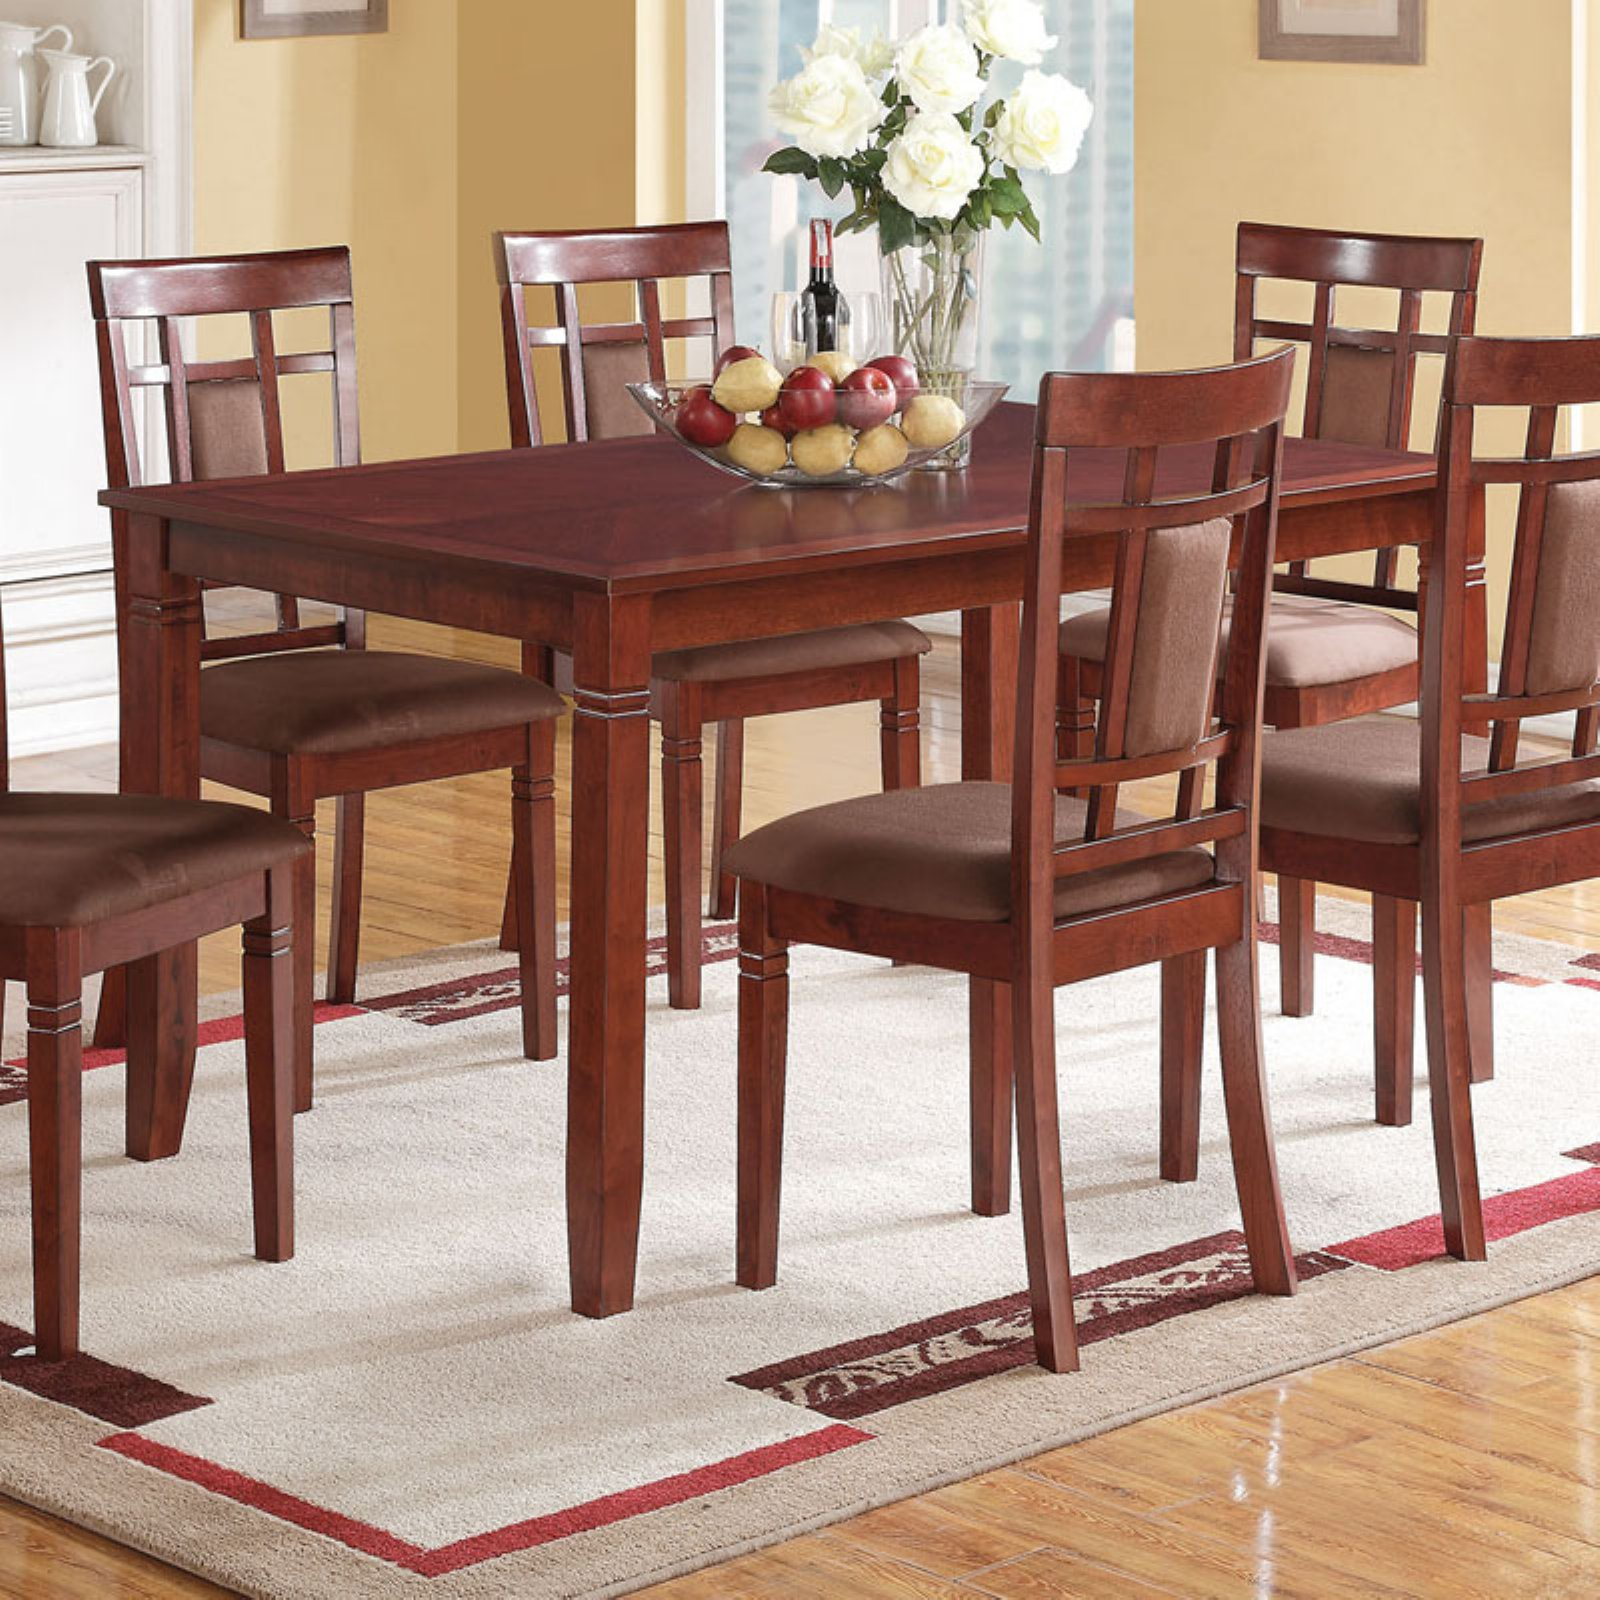 Superieur ACME Sonata Dining Table, Cherry   TABLE ONLY